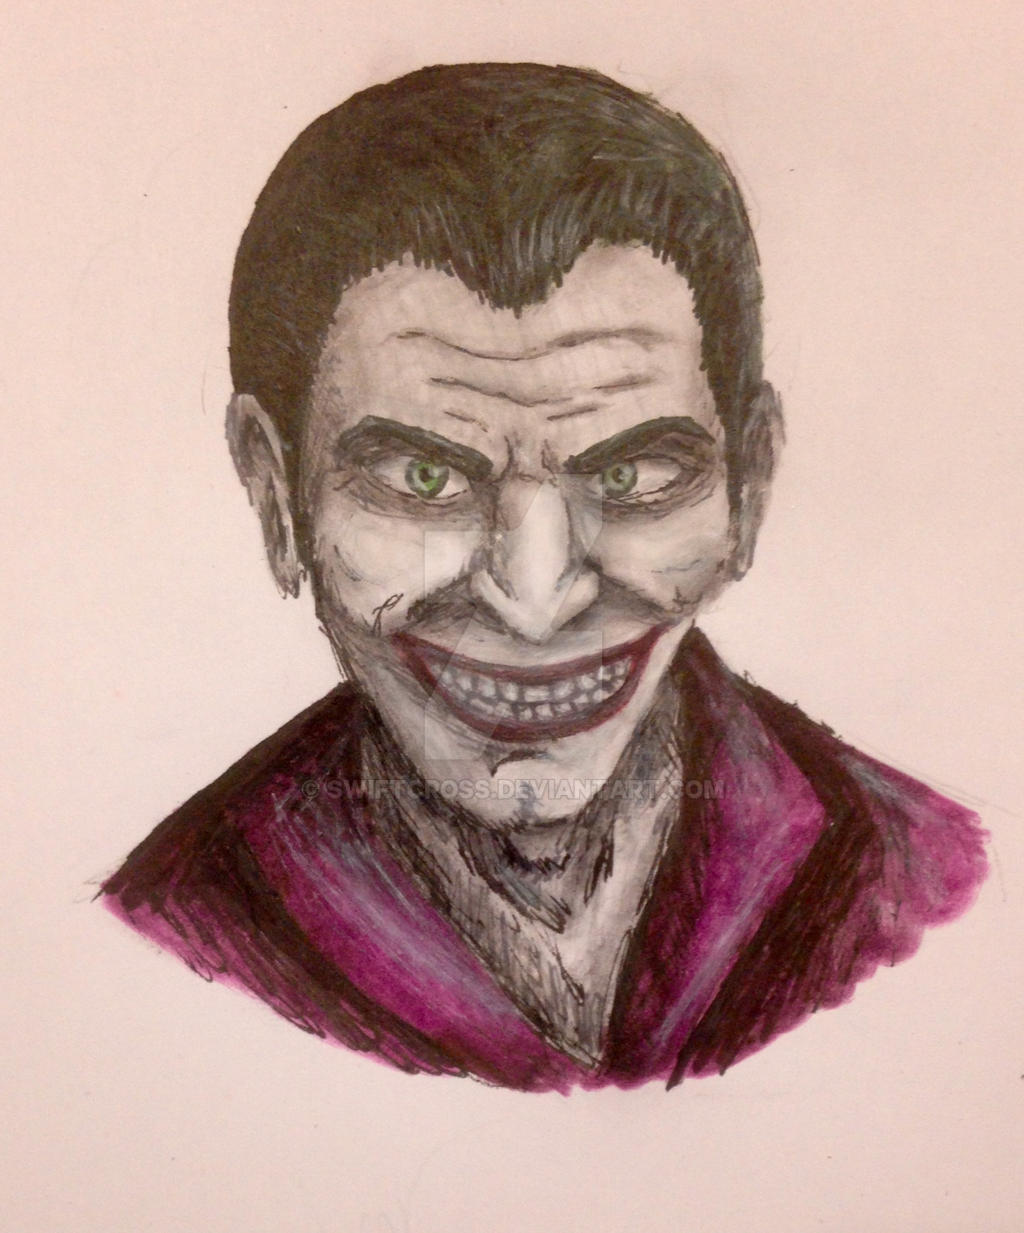 Joker by swiftcross